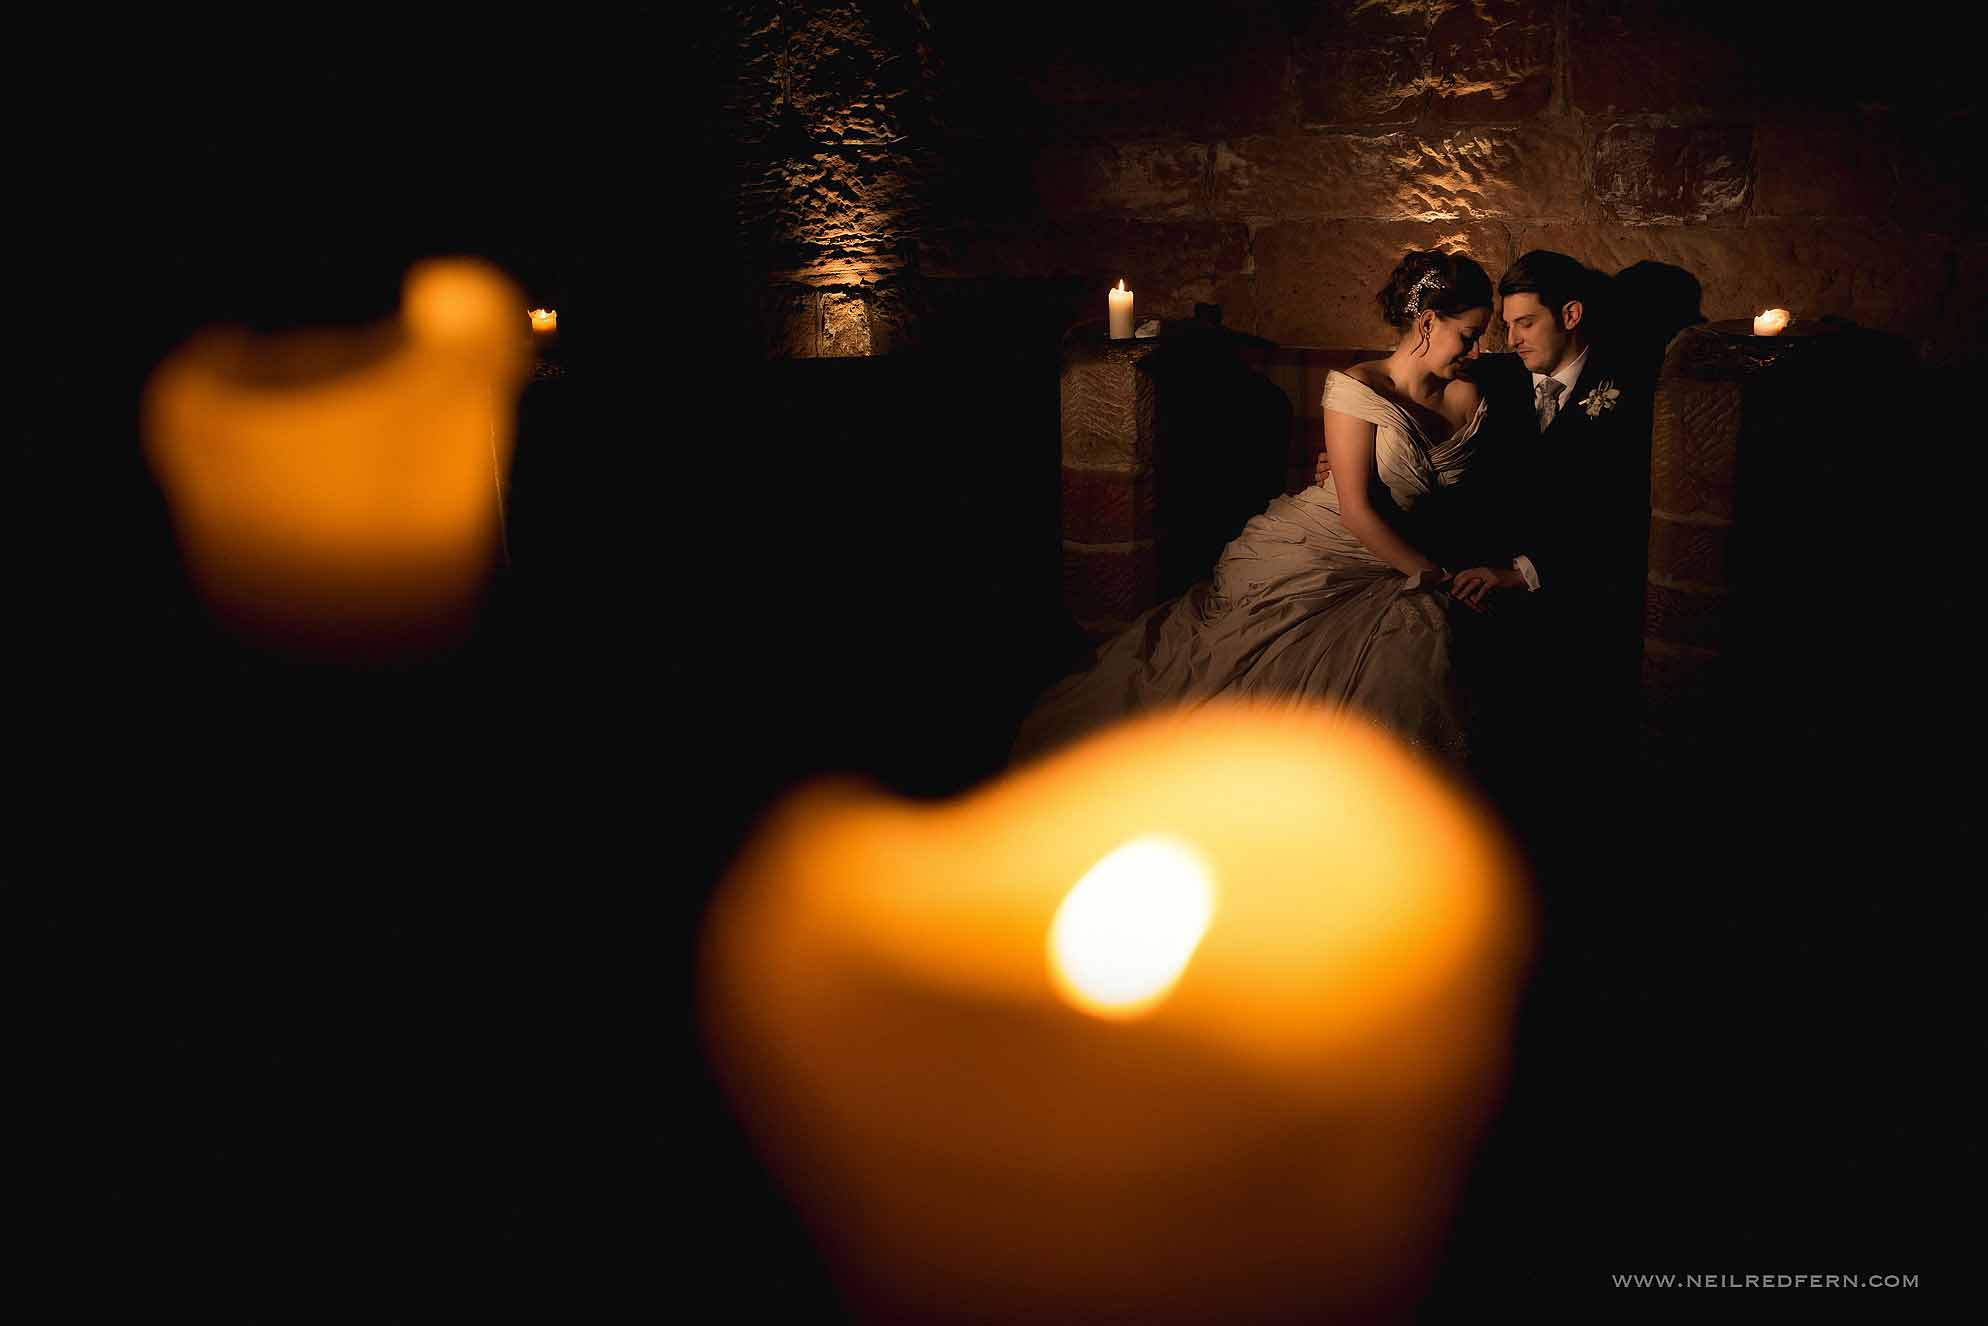 Peckforton-Castle-wedding-photography-09